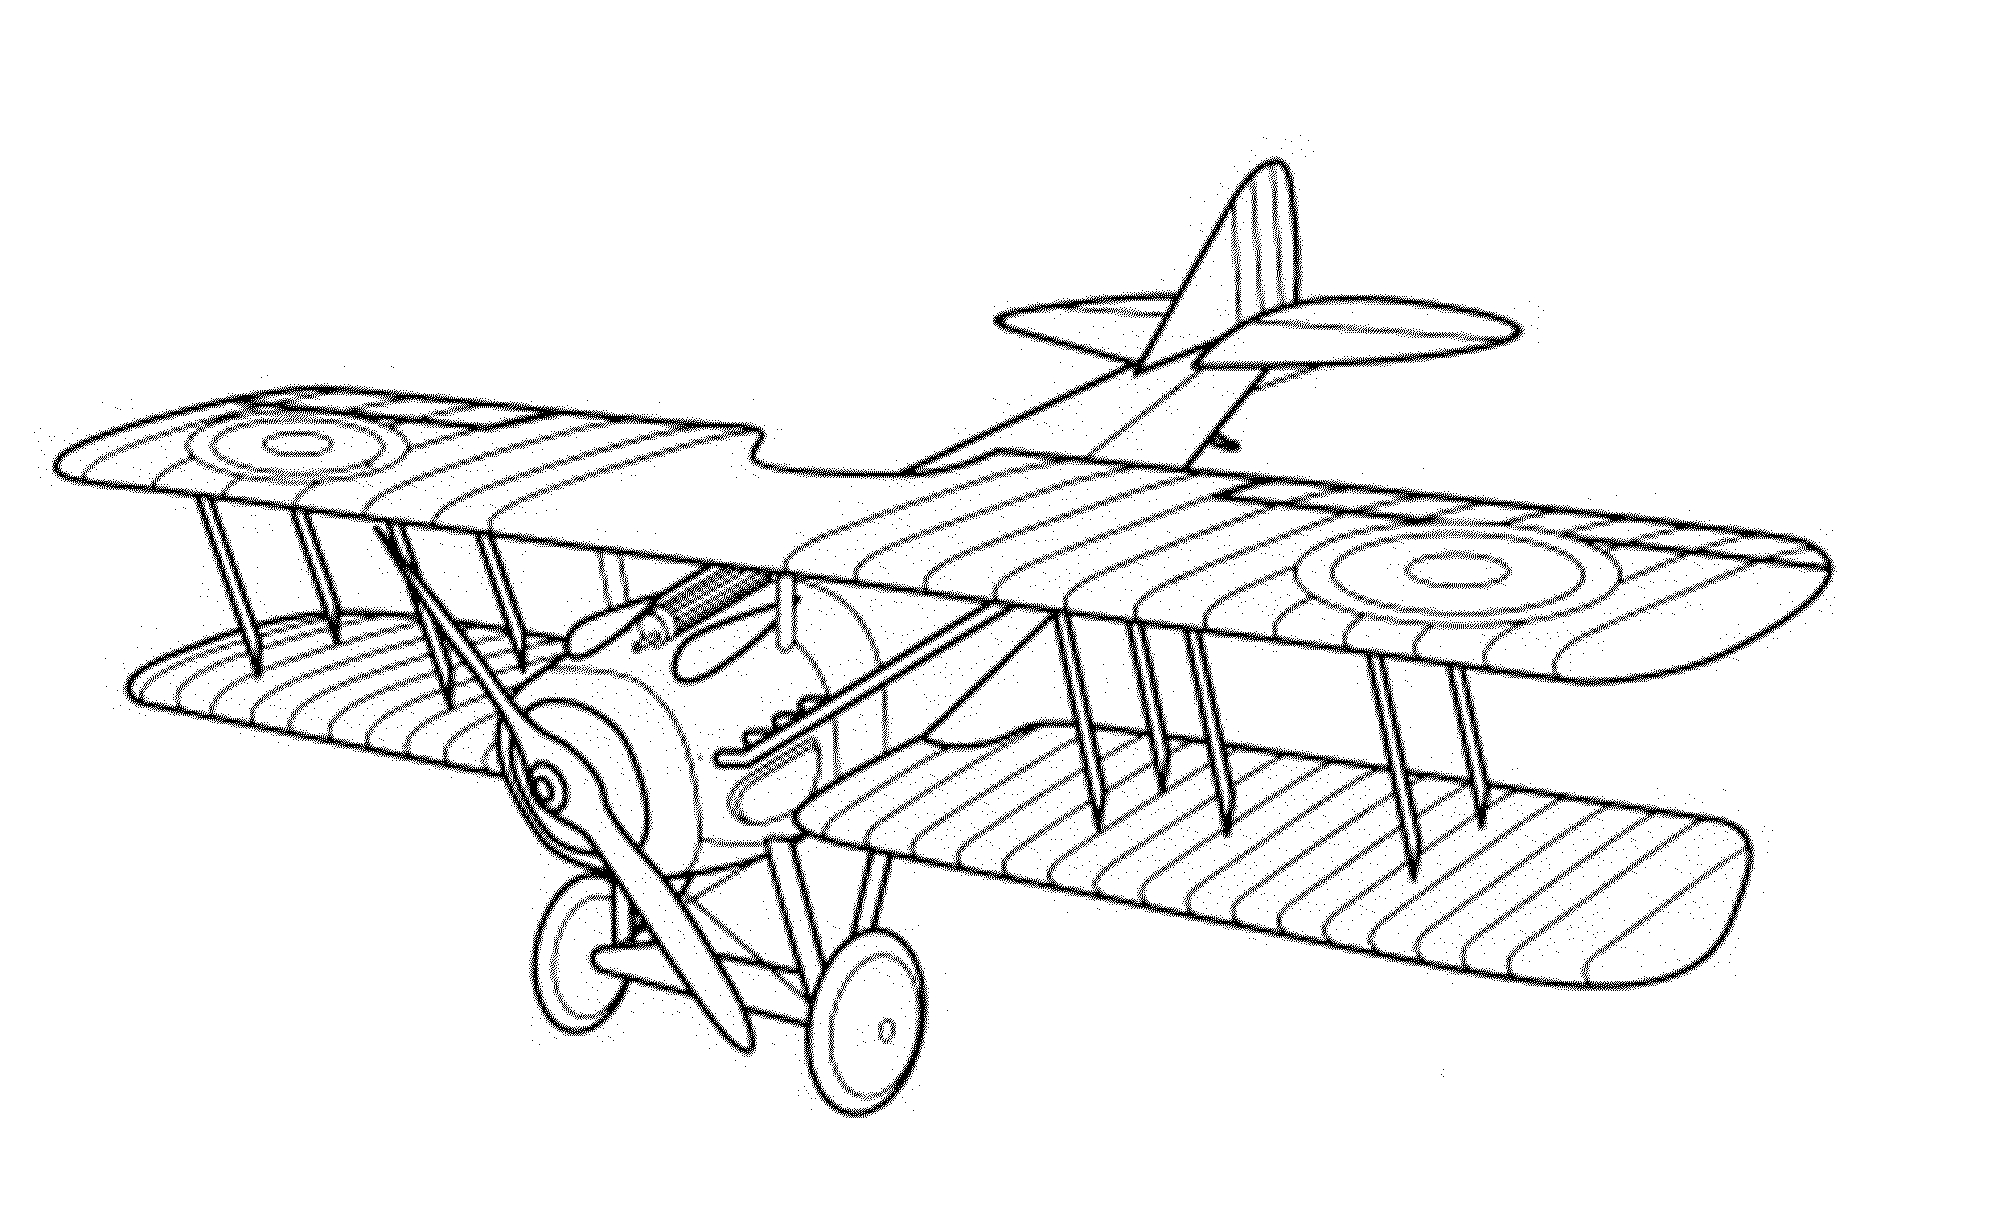 2000x1232 Awesome Airplanes Coloring Pages Gallery Printable Coloring Sheet